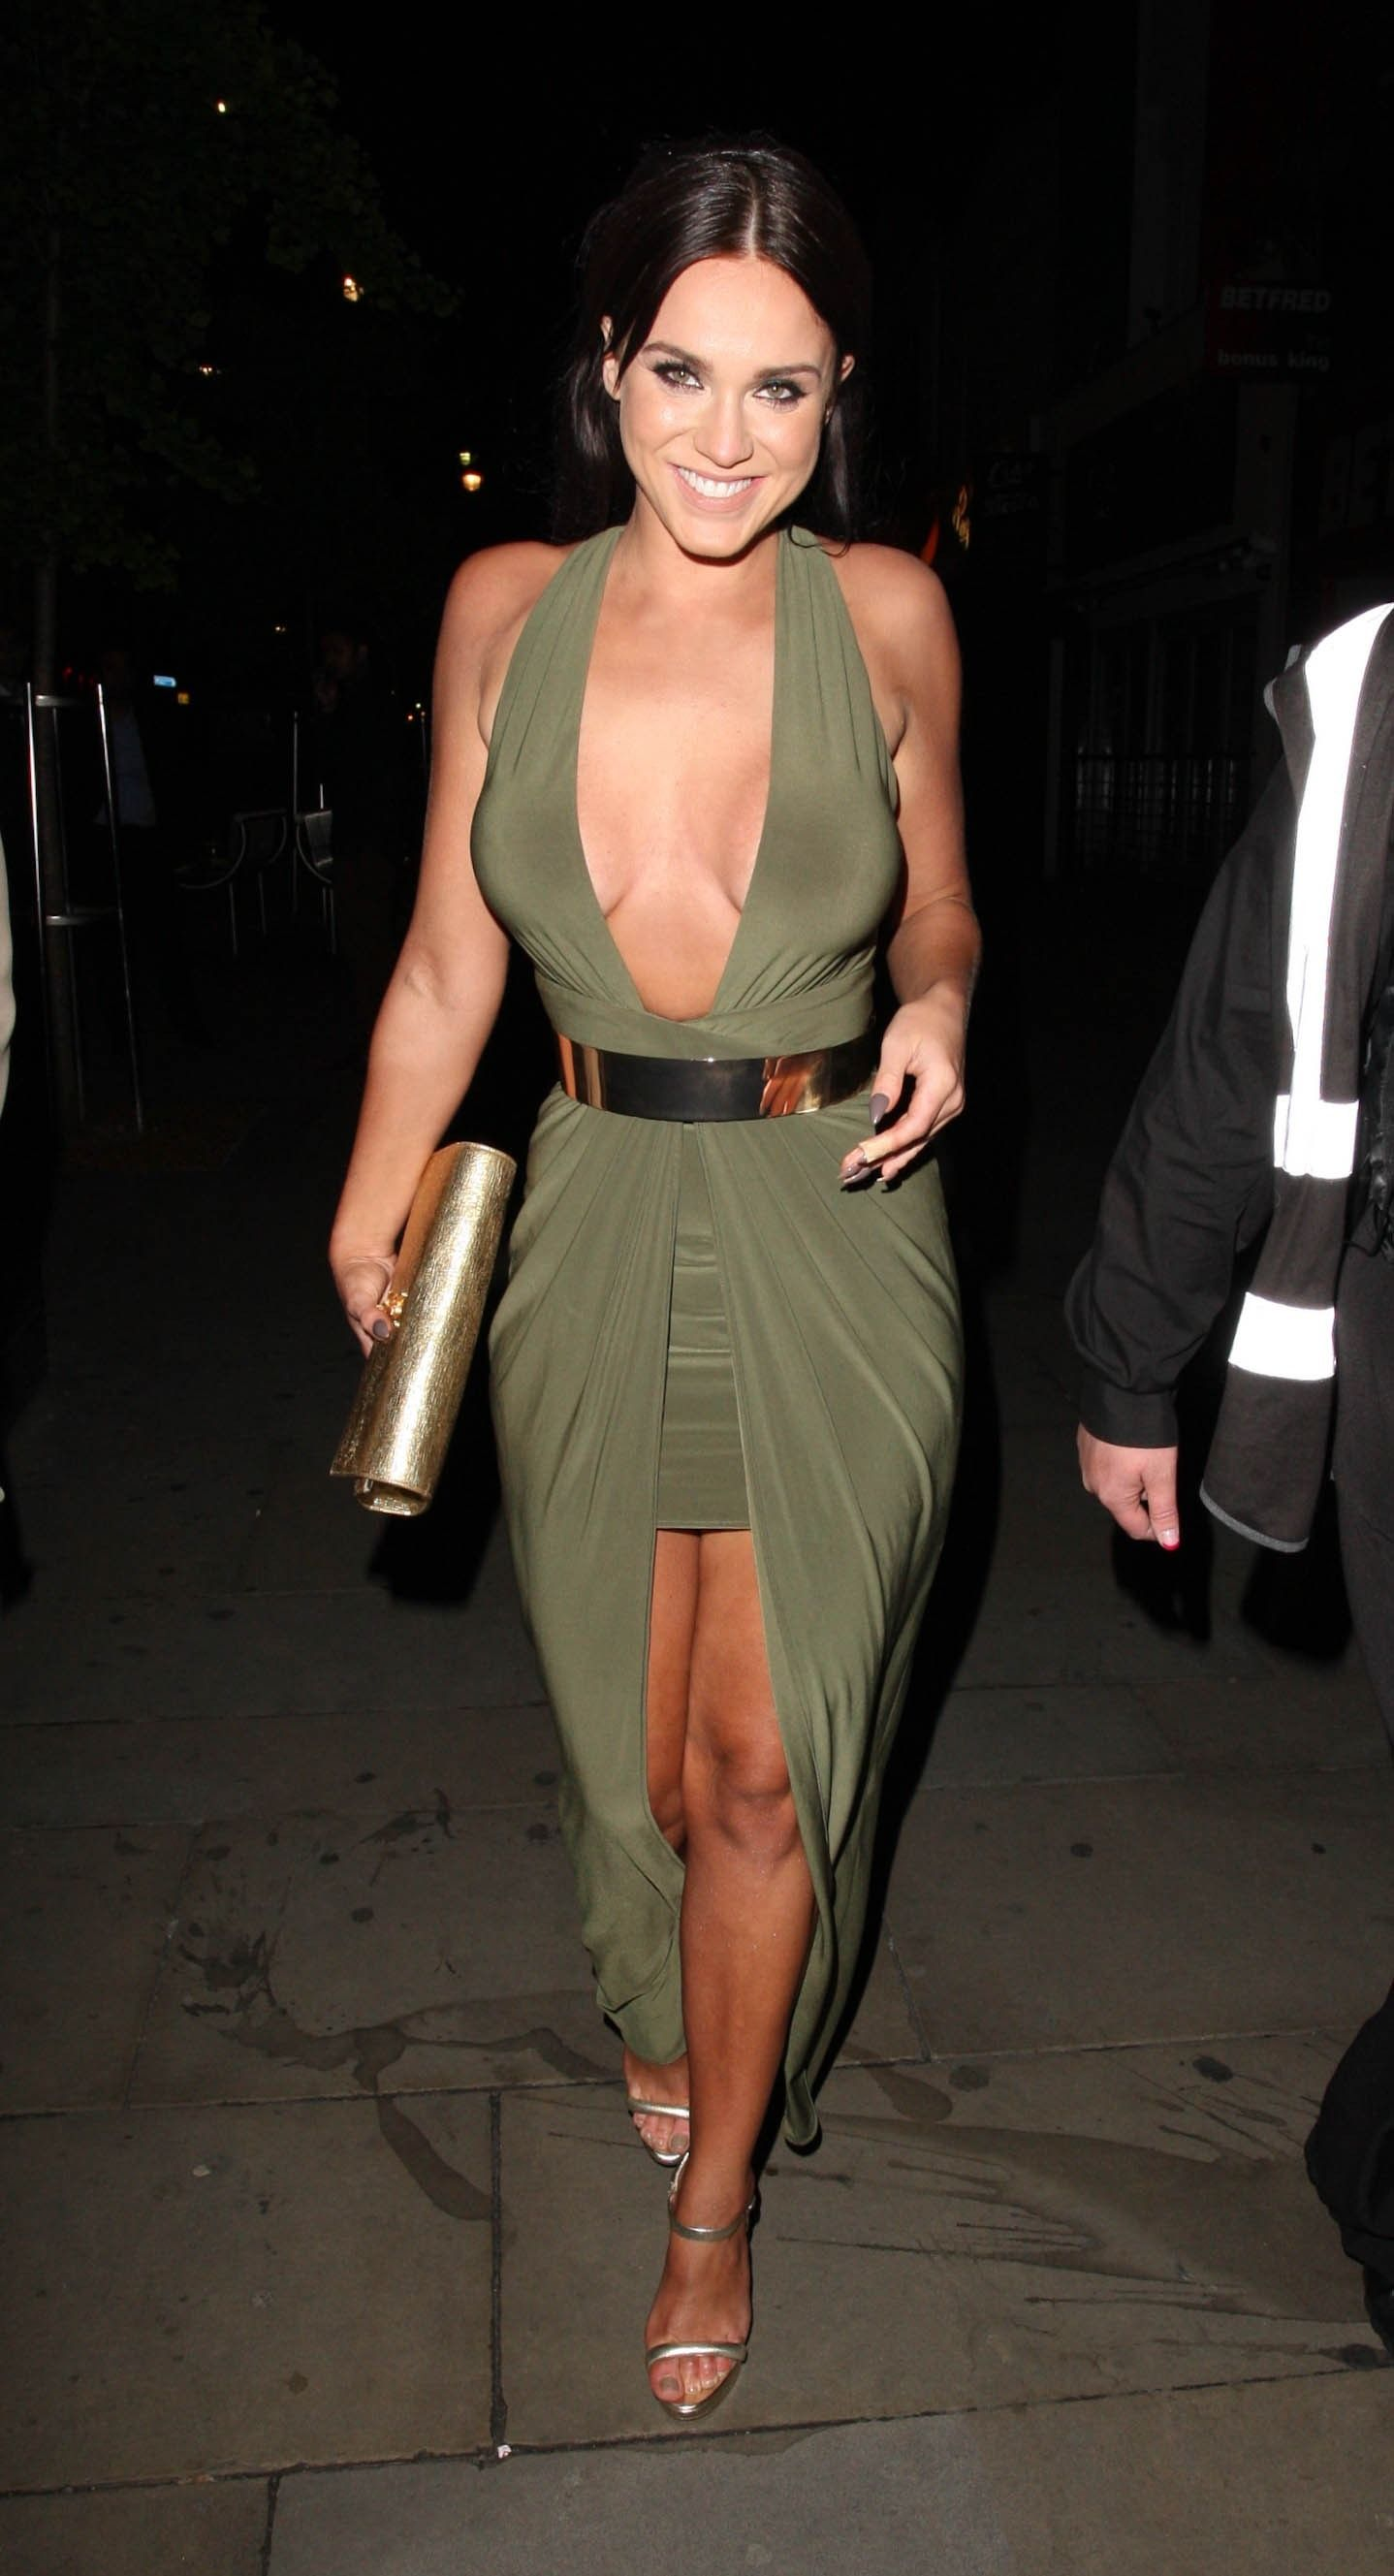 Vicky Pattison Cleavage (4 Photos)